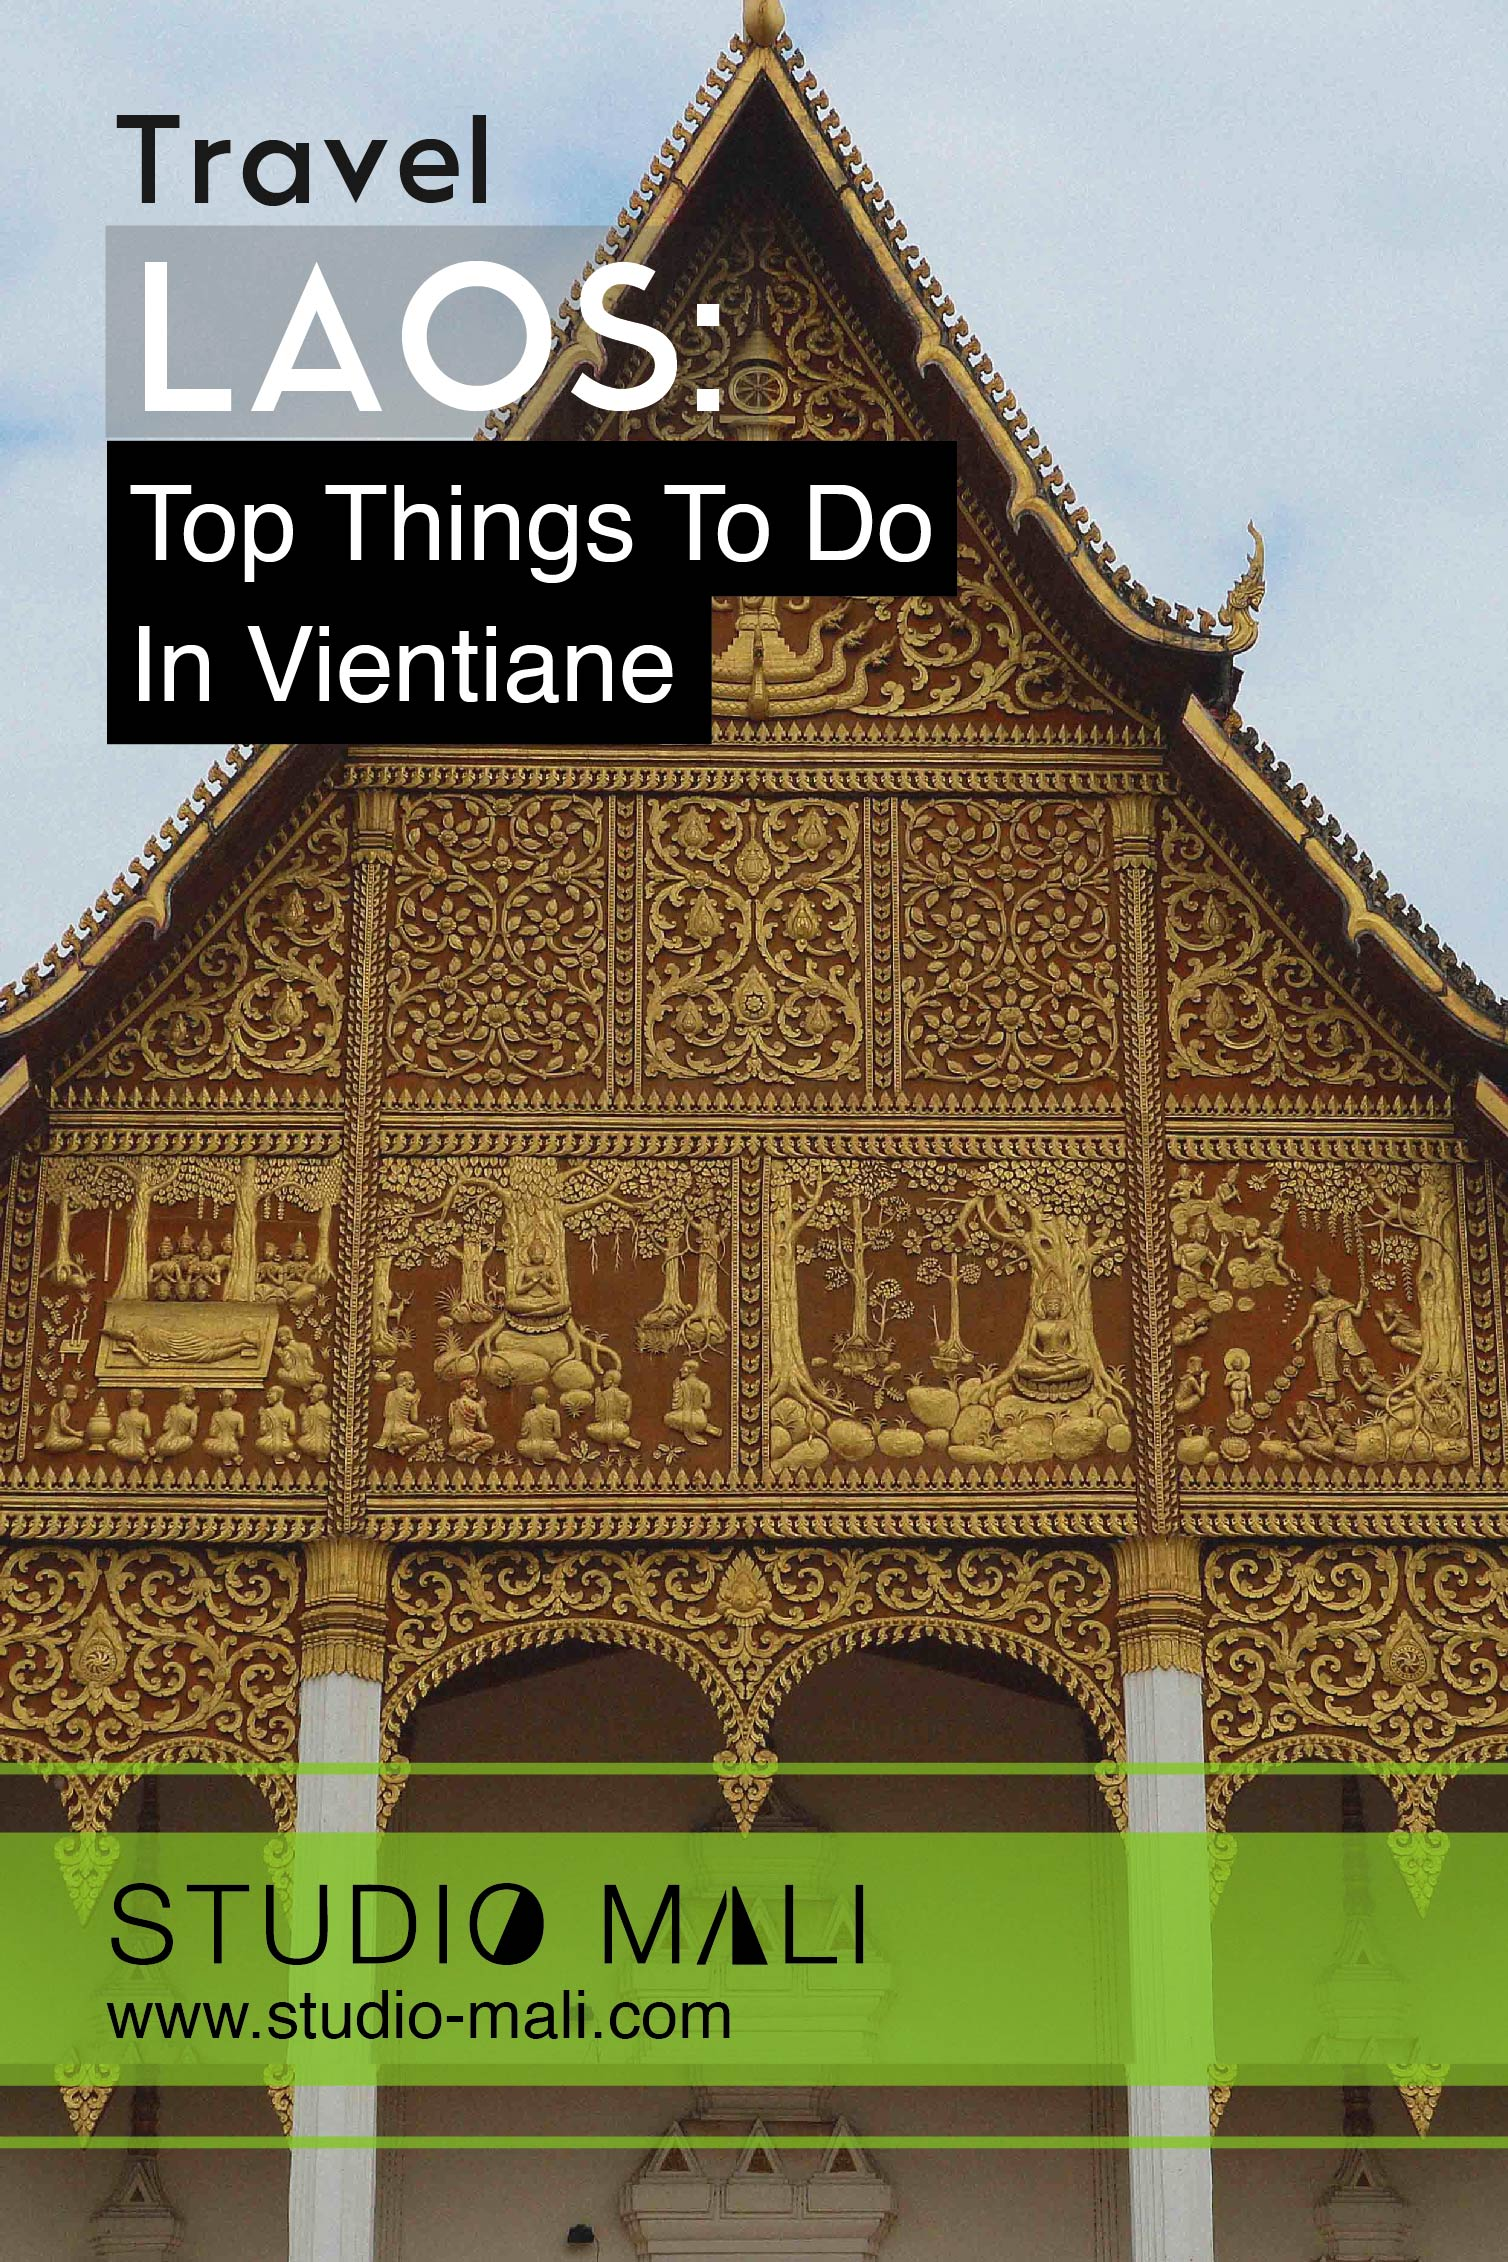 Laos - Top Things To Do In Vientiane, by Studio Mali.jpg